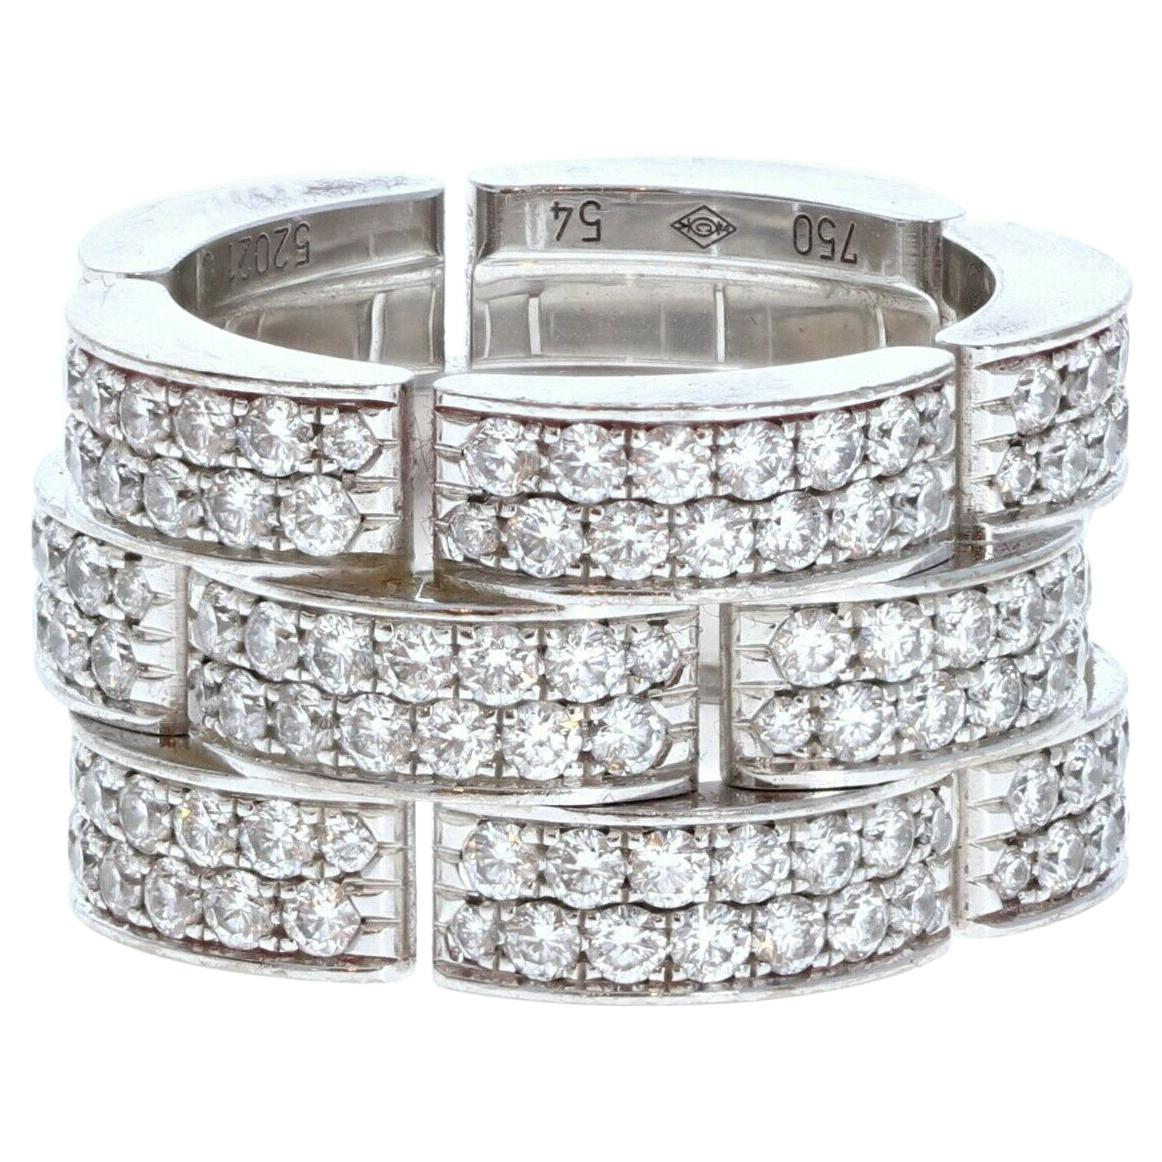 Cartier Maillon Panthere XL Diamond Band Ring 20.6g with Box